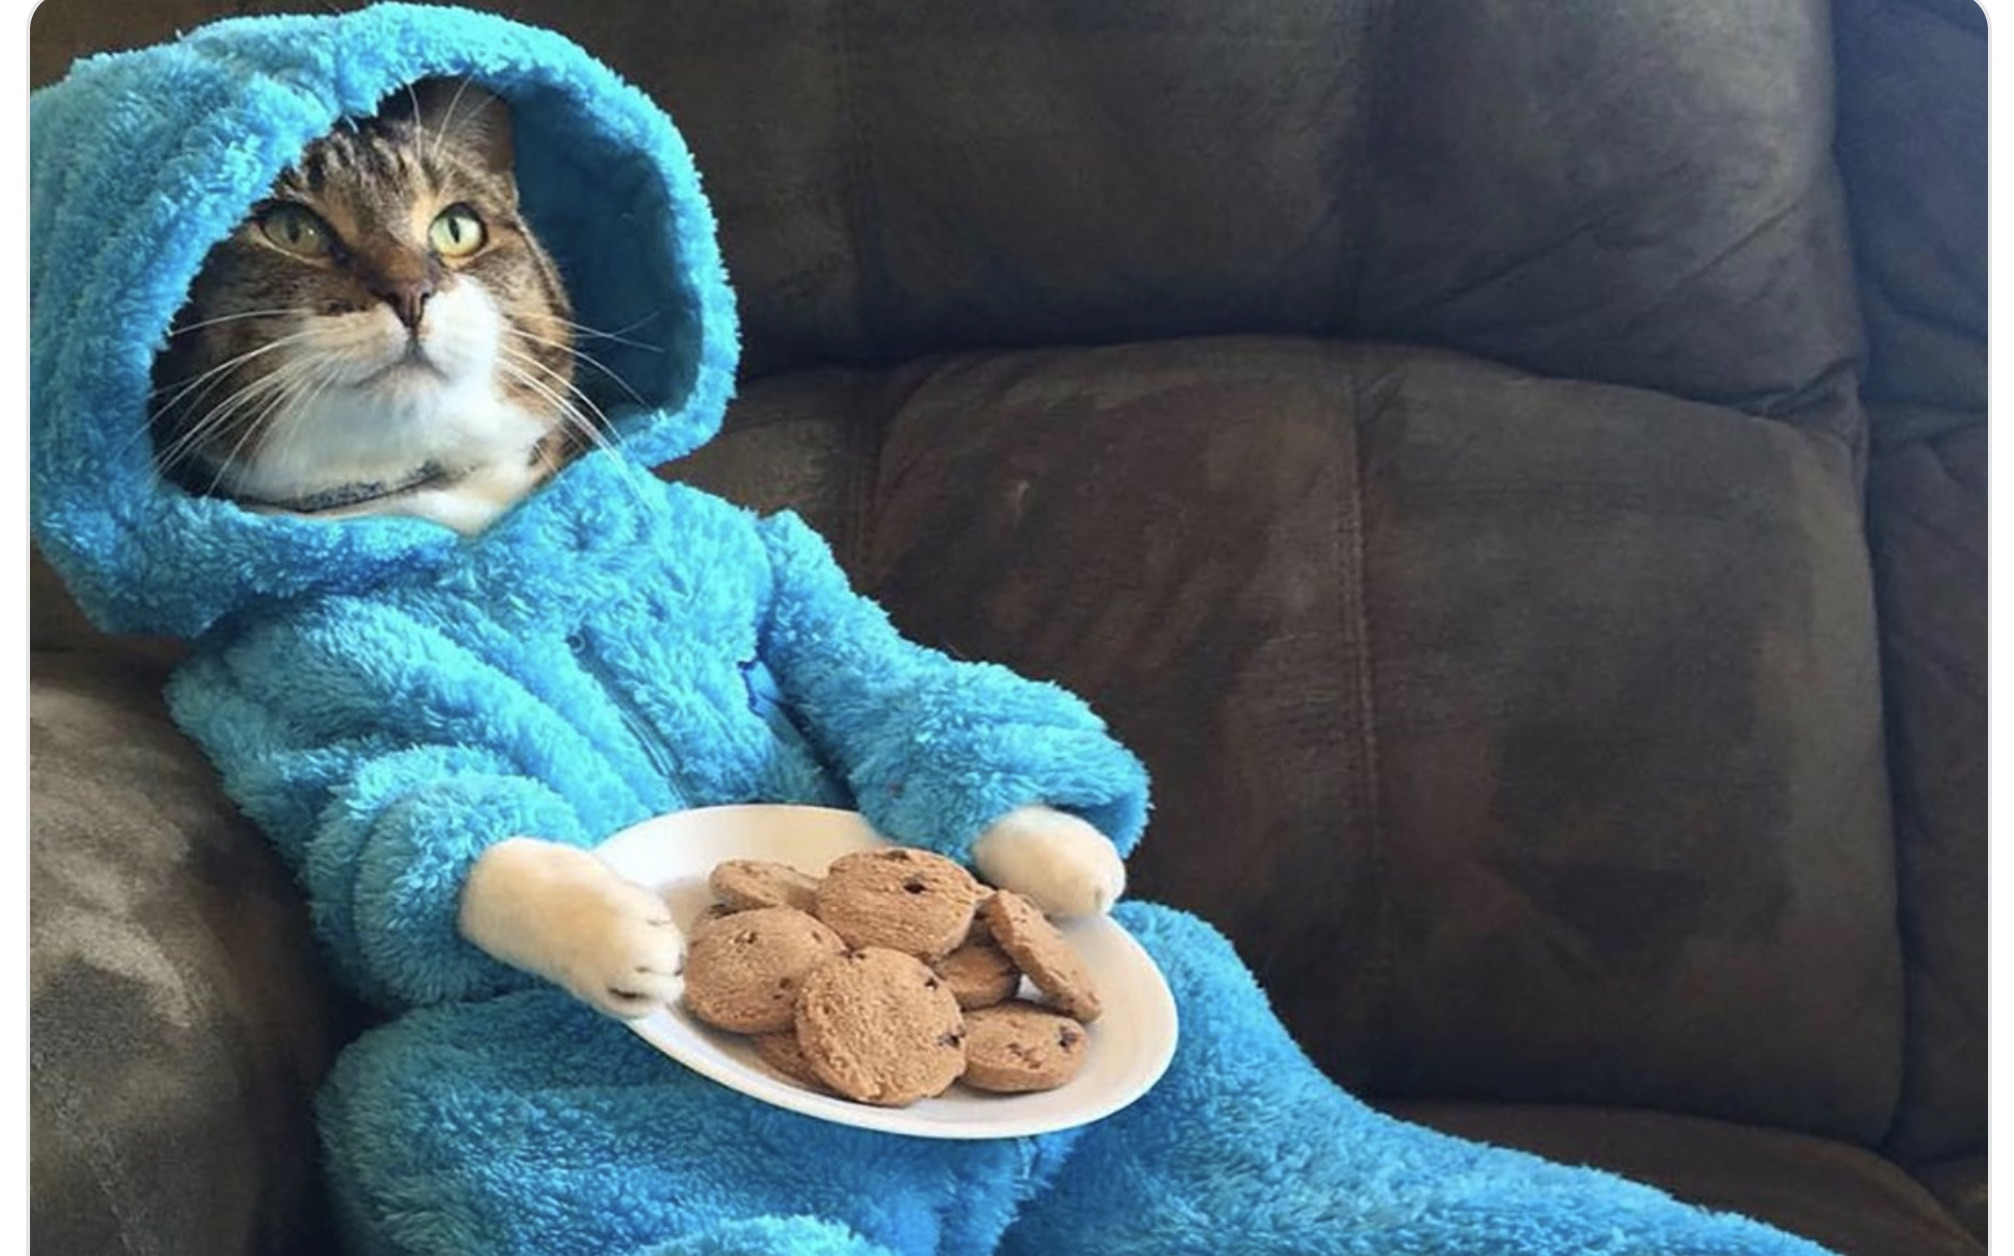 The U.S. State Department accidentally sent out this photo of a cat wearing pajamas